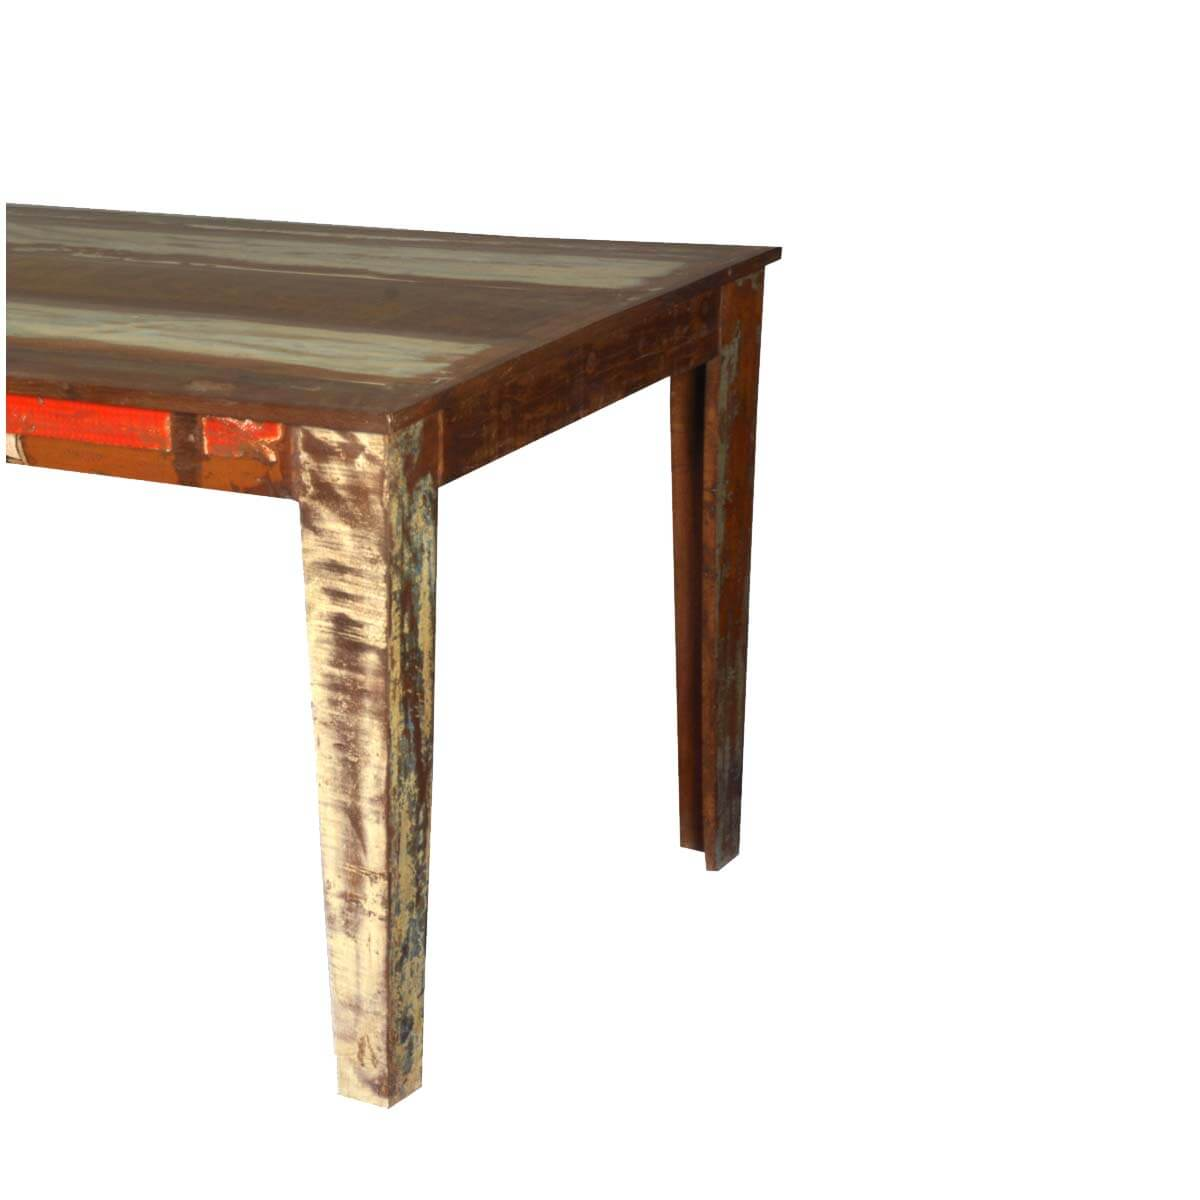 Discount Wood Kitchen Tables